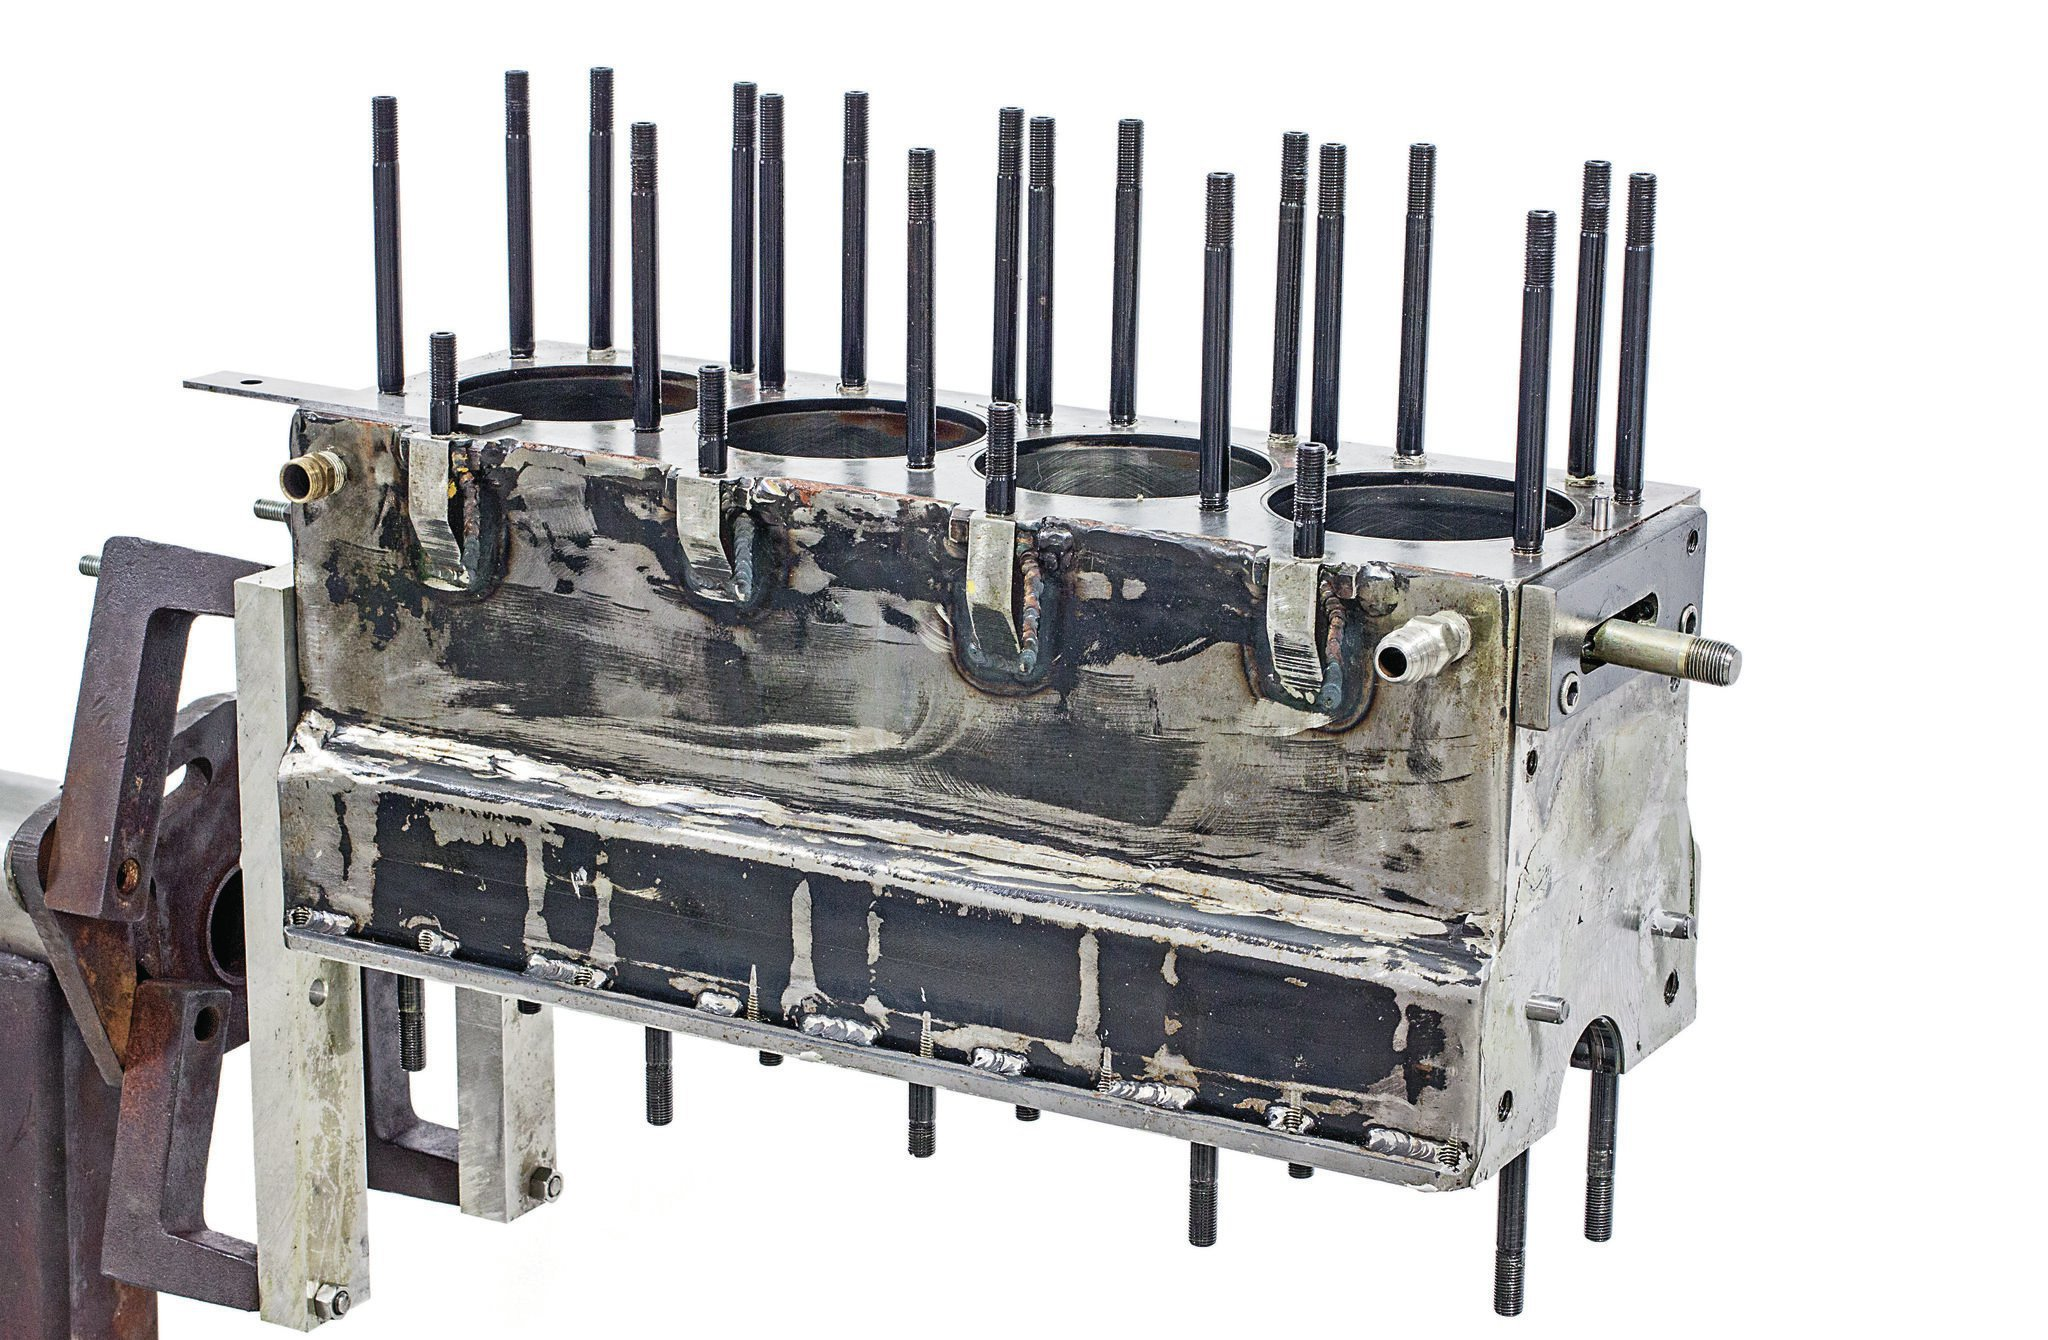 This is the complete, welded-together block assembly. The weld beads are a subtle indicator that this block is fabbed, not cast. The final step was establishing a head-bolt pattern that cleared the ports and maintains maximum gasket integrity. They ended up using 7⁄16-inch bolts, seven per cylinder. They're ARP, as are the main and rod bolts.